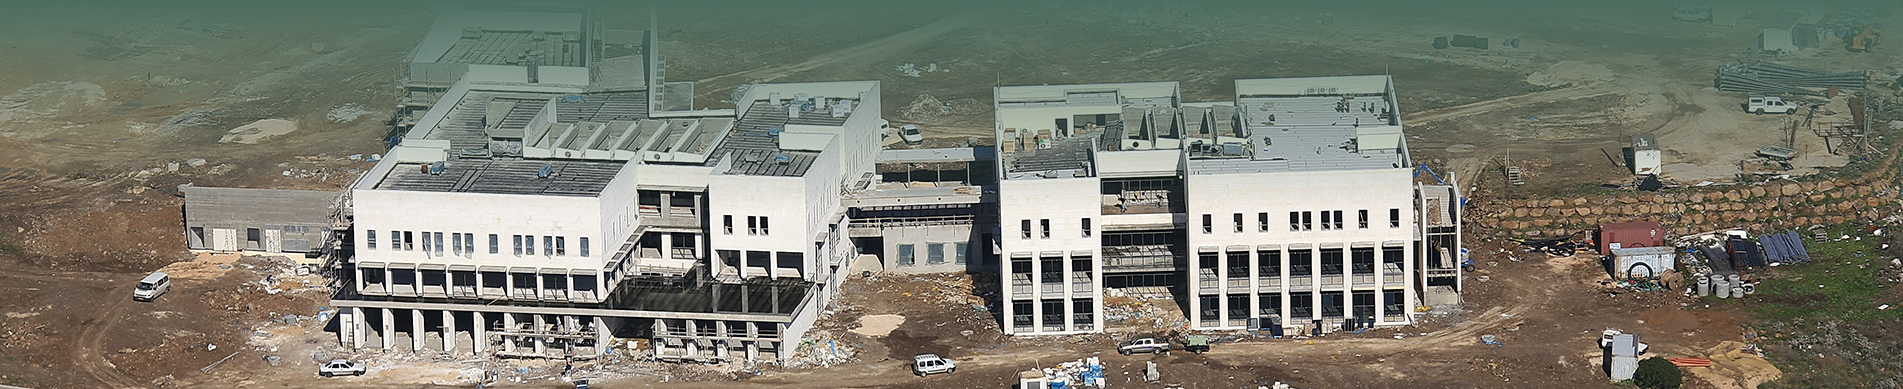 The campus under construction